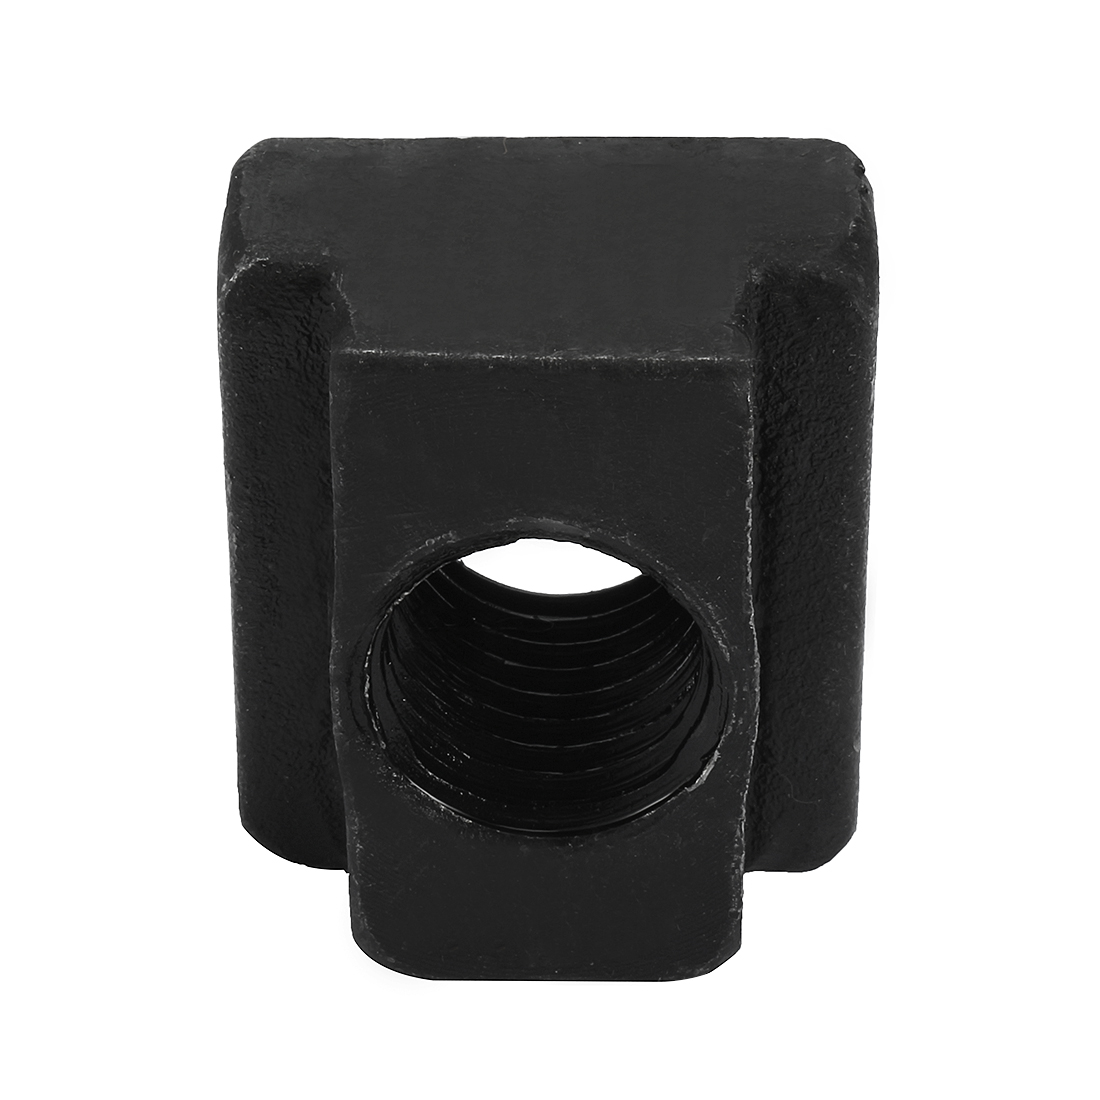 M18 Steel T-Slot Nut Black Oxide Plated Grade 8.8 Tapped Through 2pcs - image 4 of 6